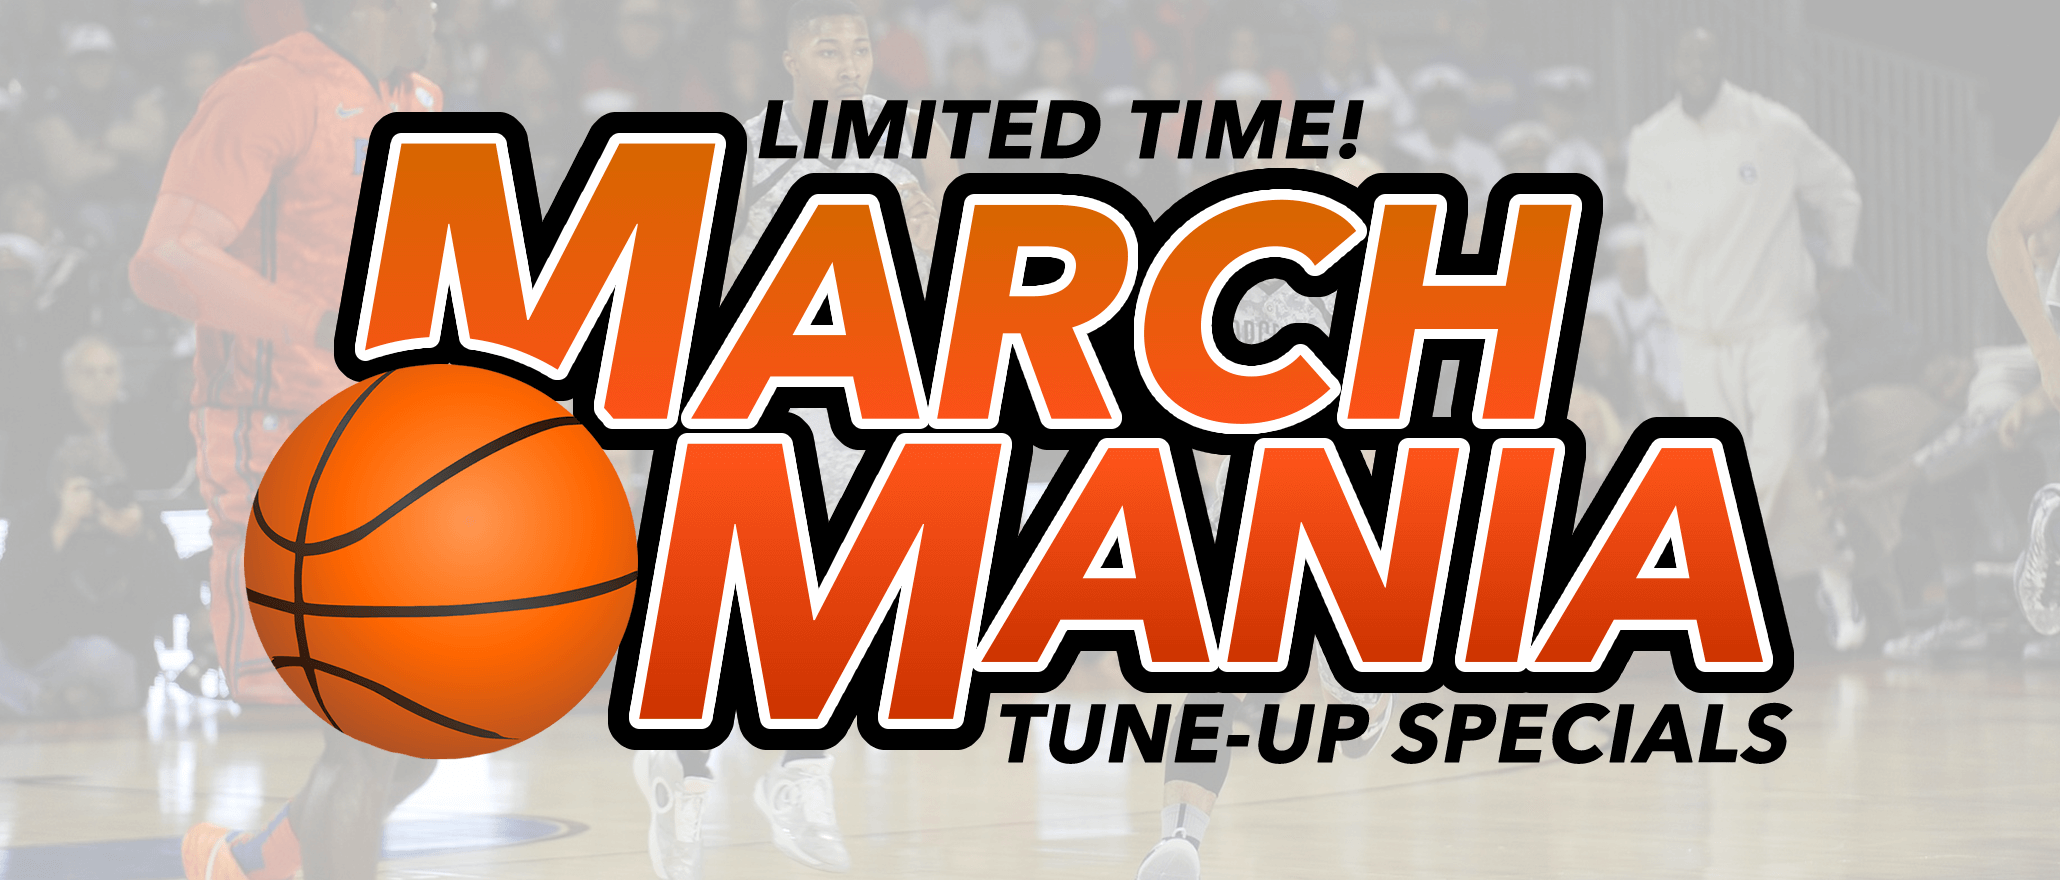 March Mania Tune-Up Specials, Limited Time!